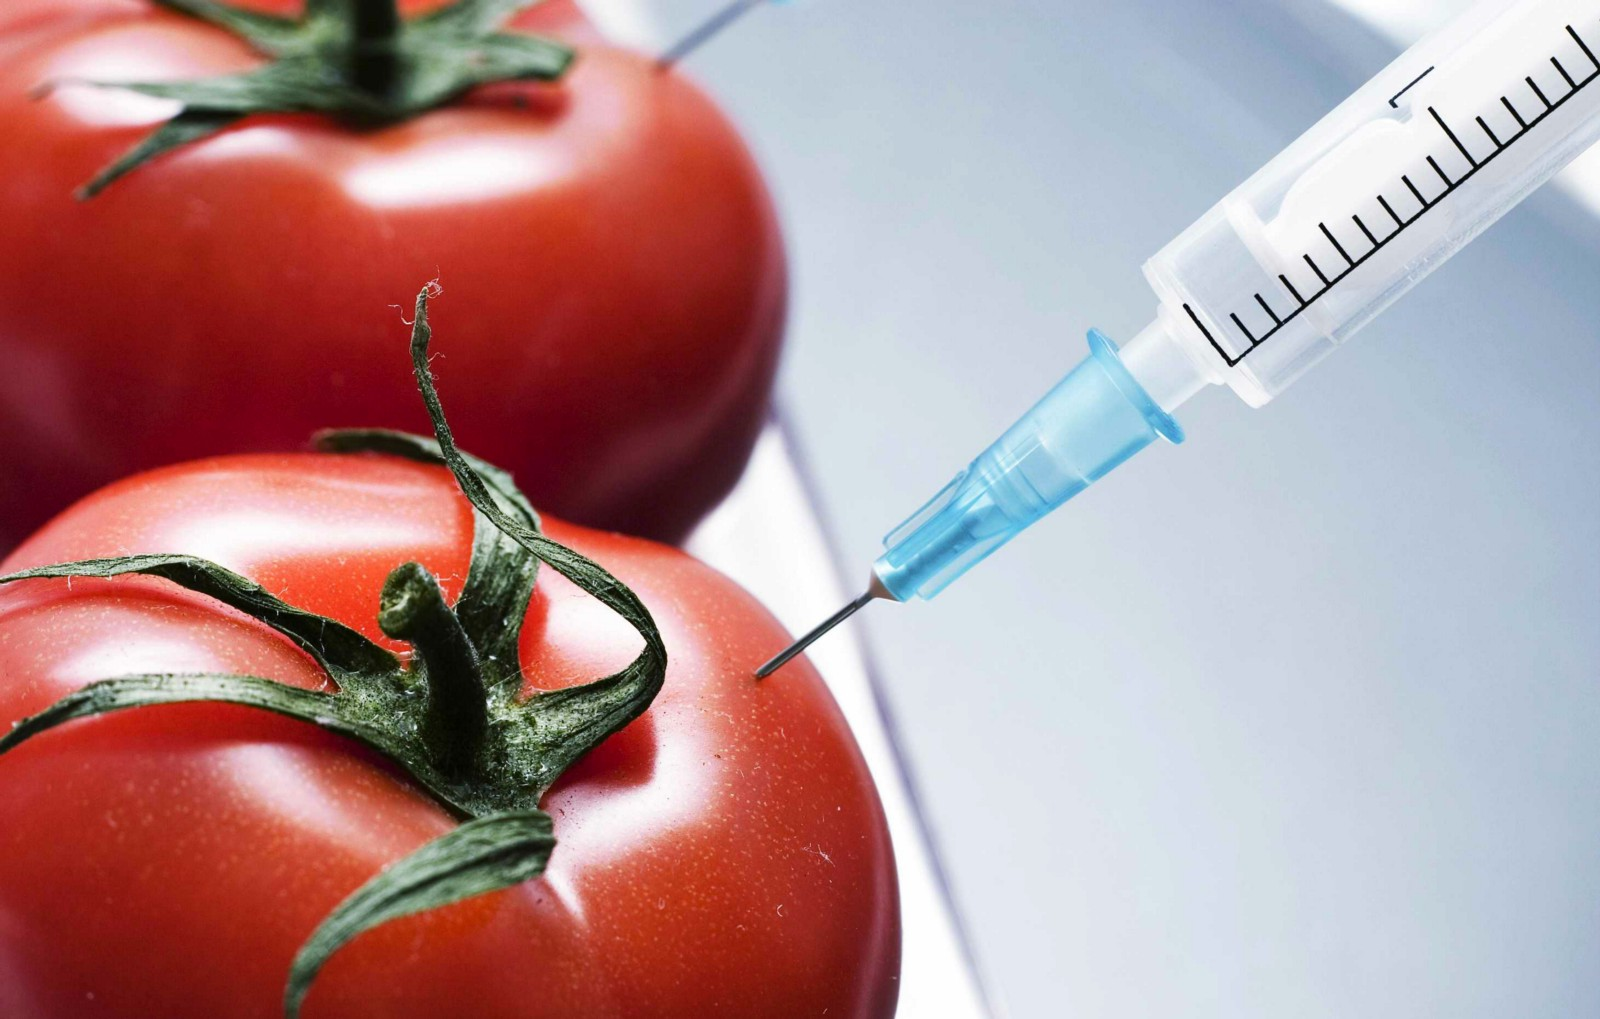 the controversy surrounding genetically modified organisms